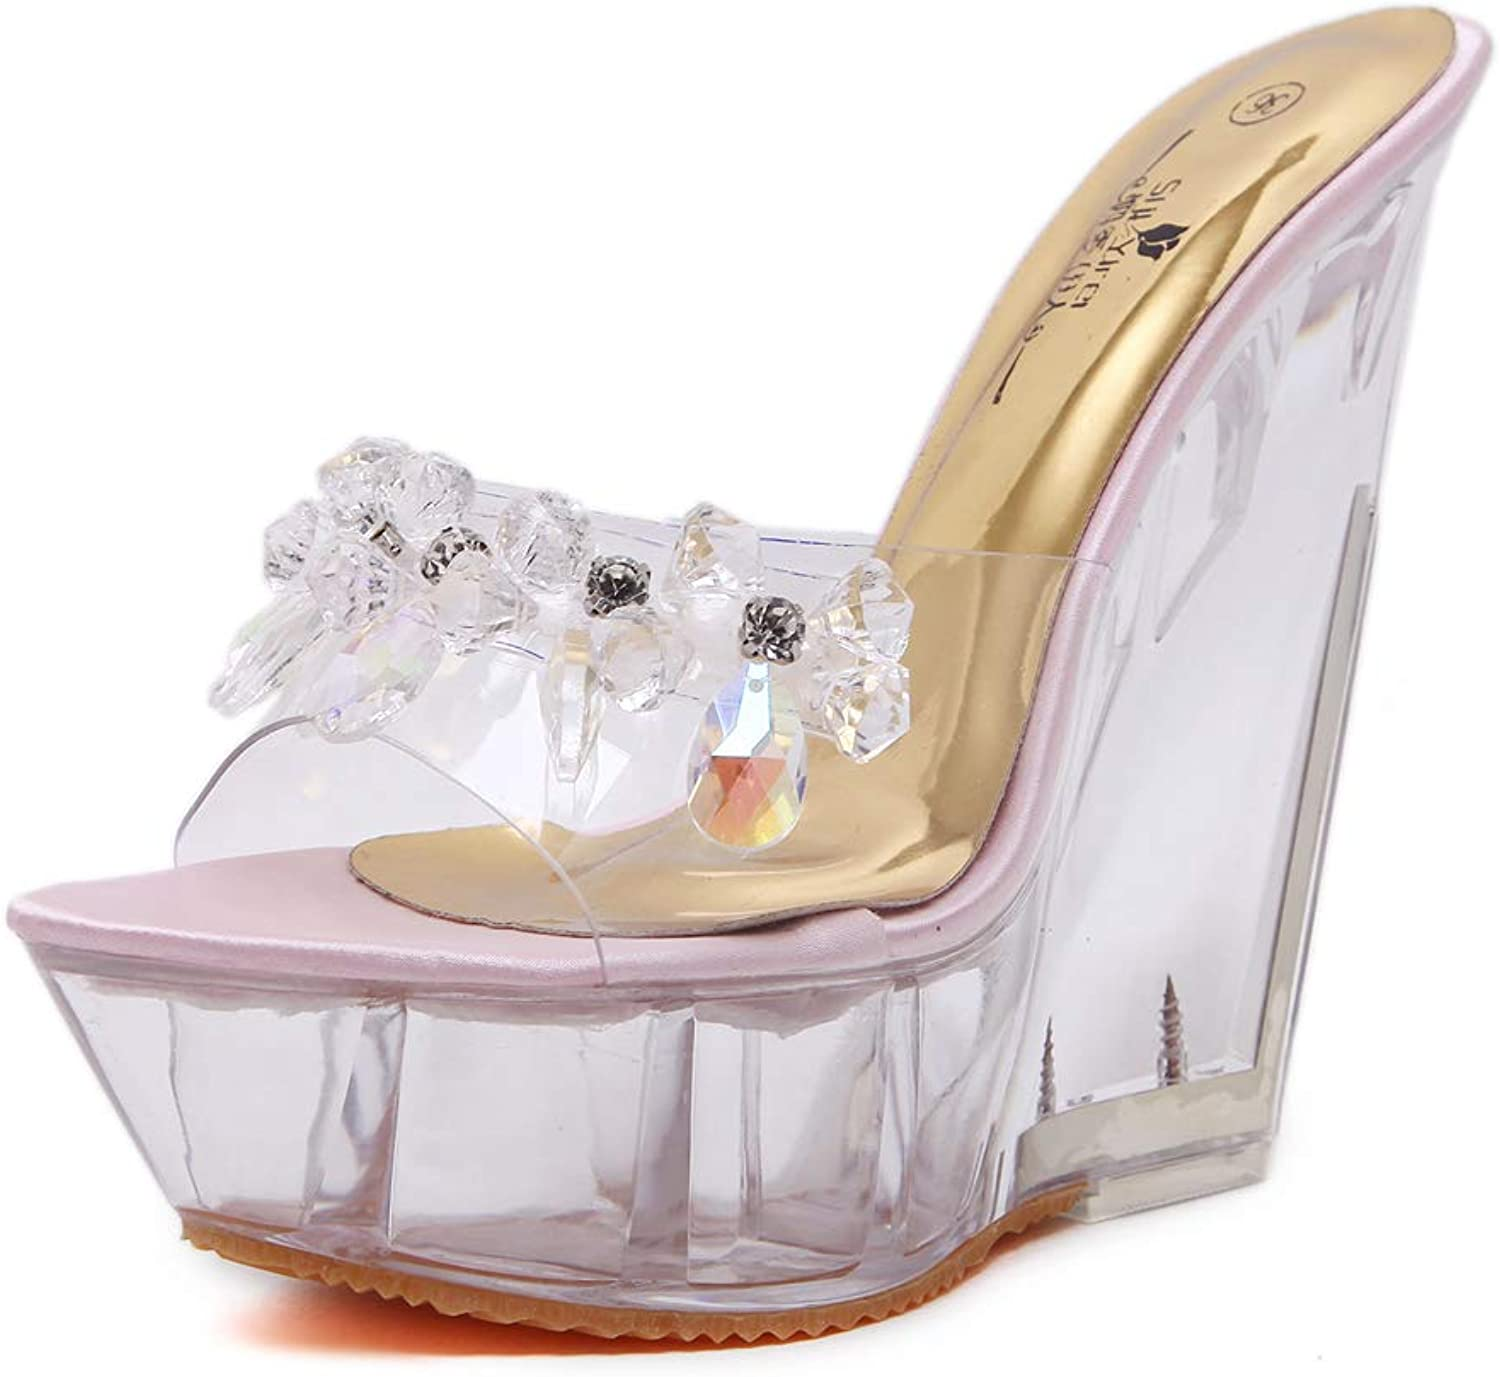 Women Crystal Wedges Sandals Woman Waterproof Platform Sexy Wild High-Heeled Transparent Slippers